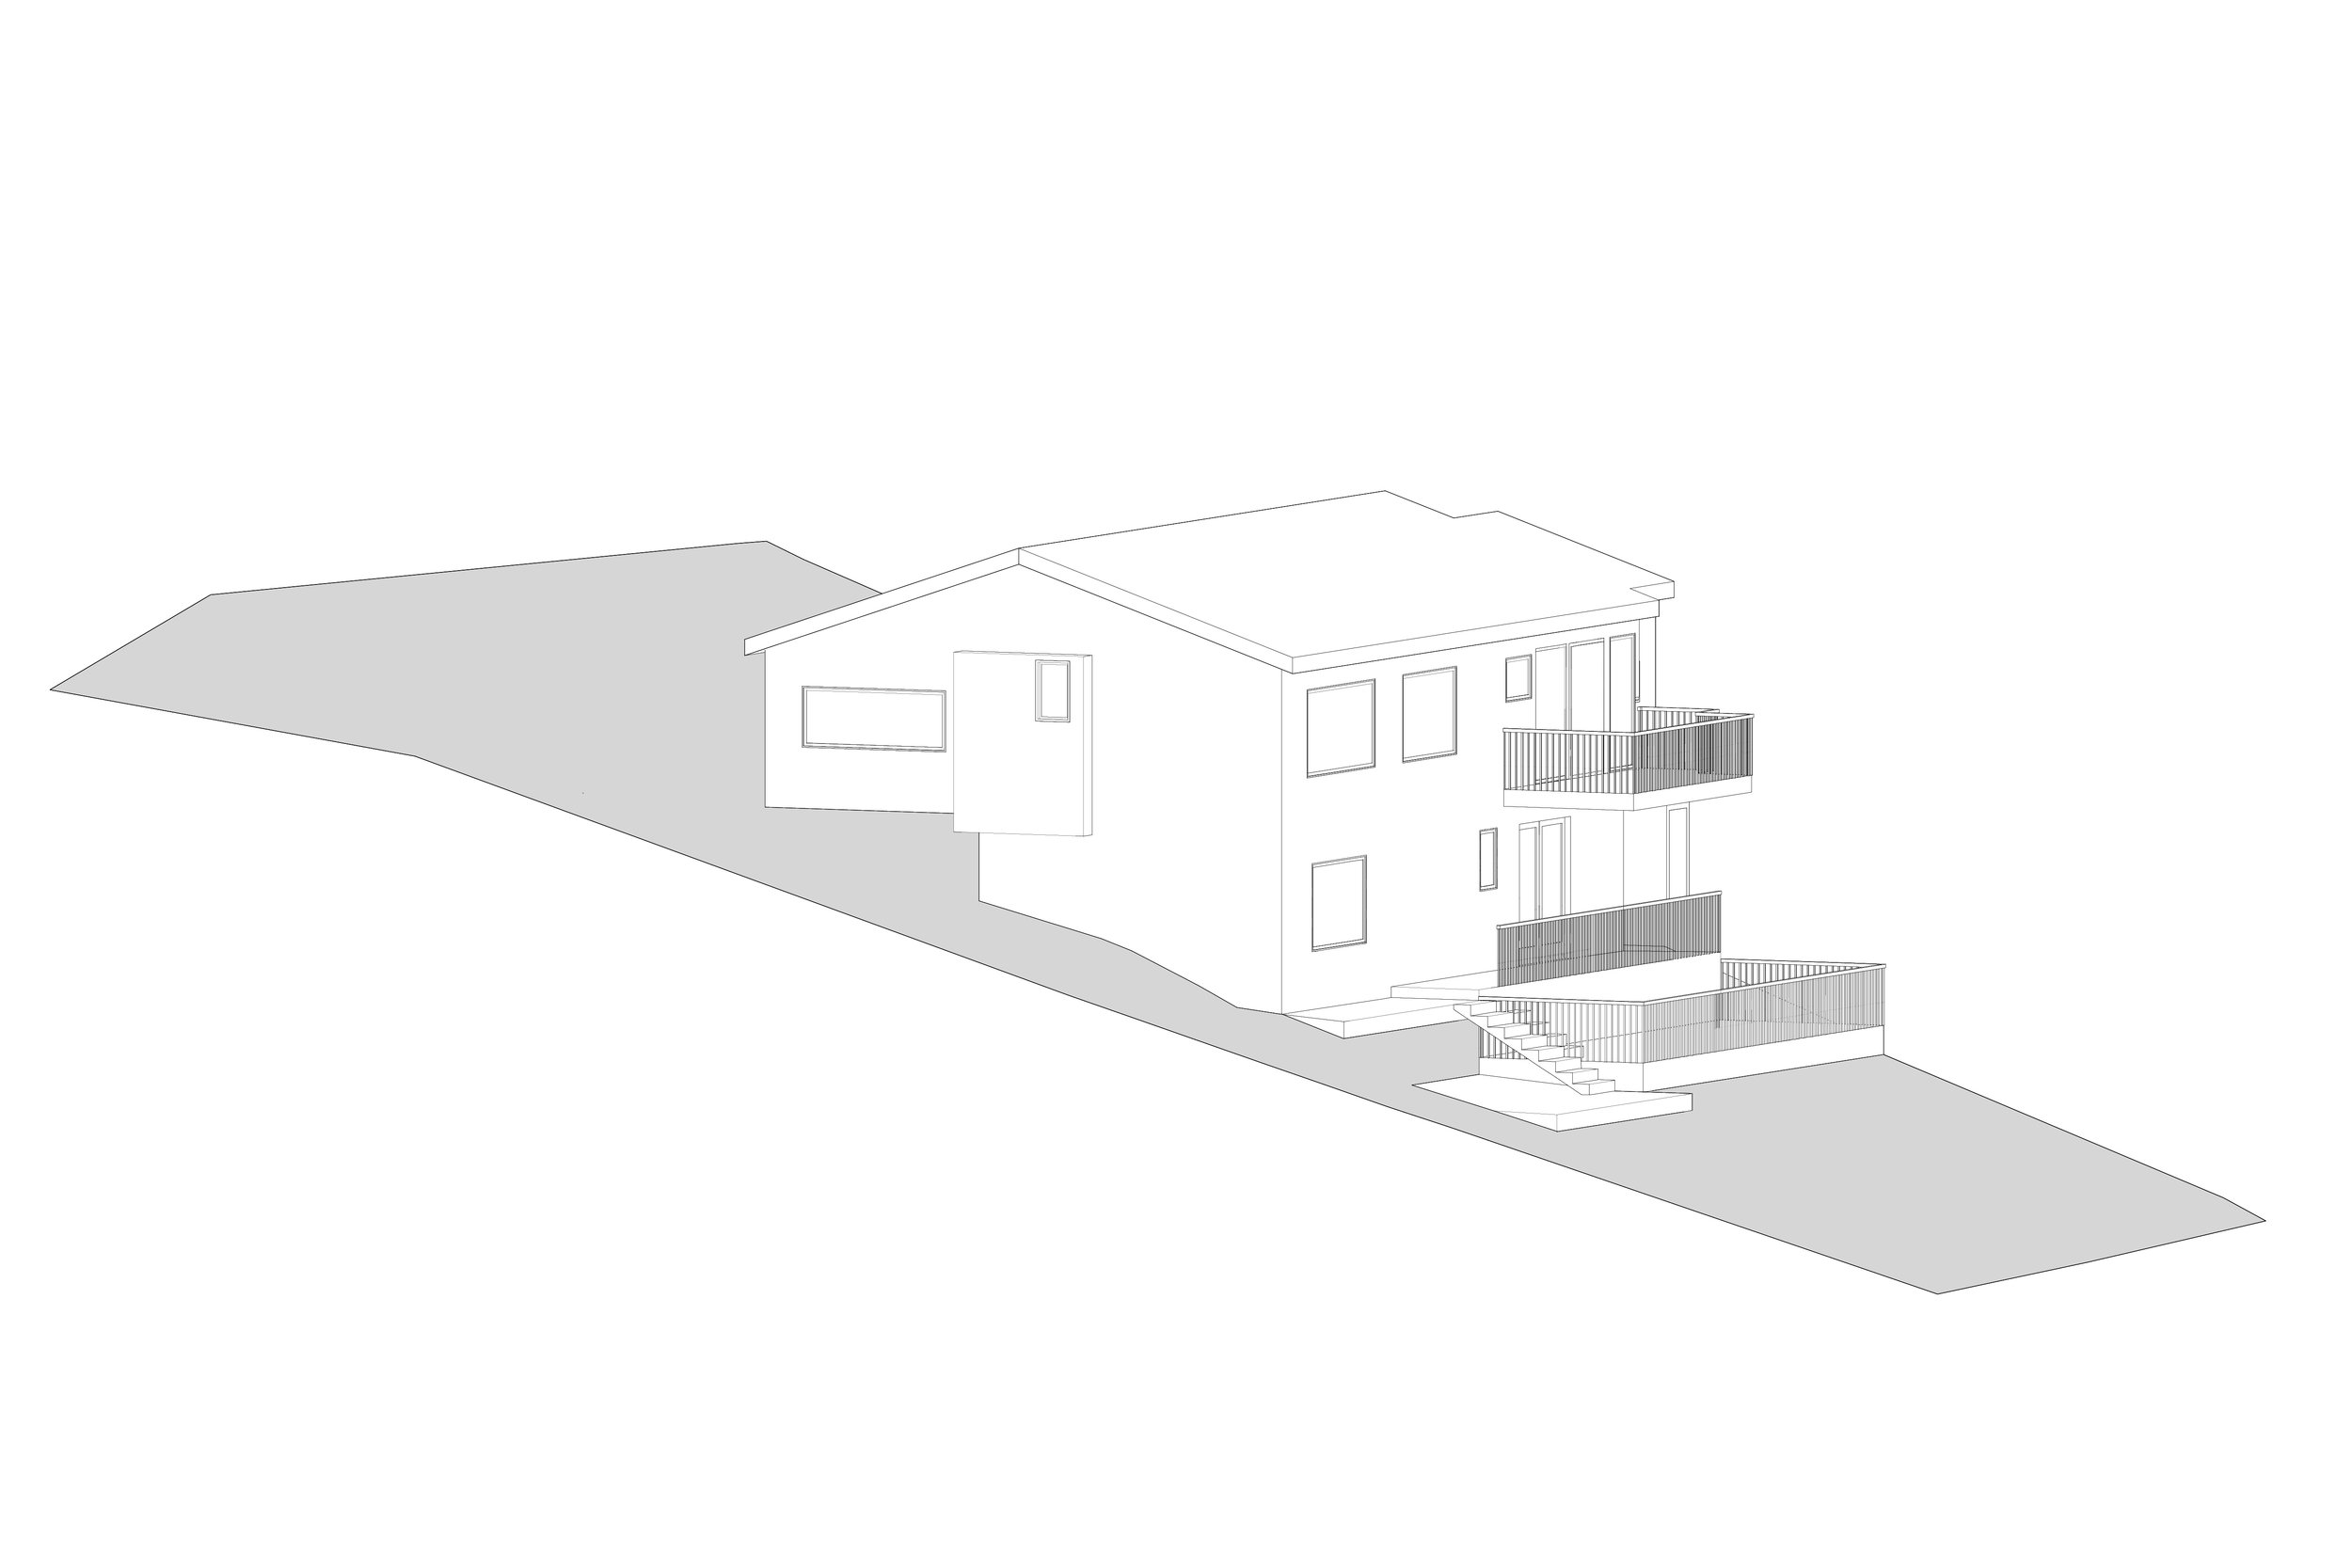 Existing House with two small decks at different levels.